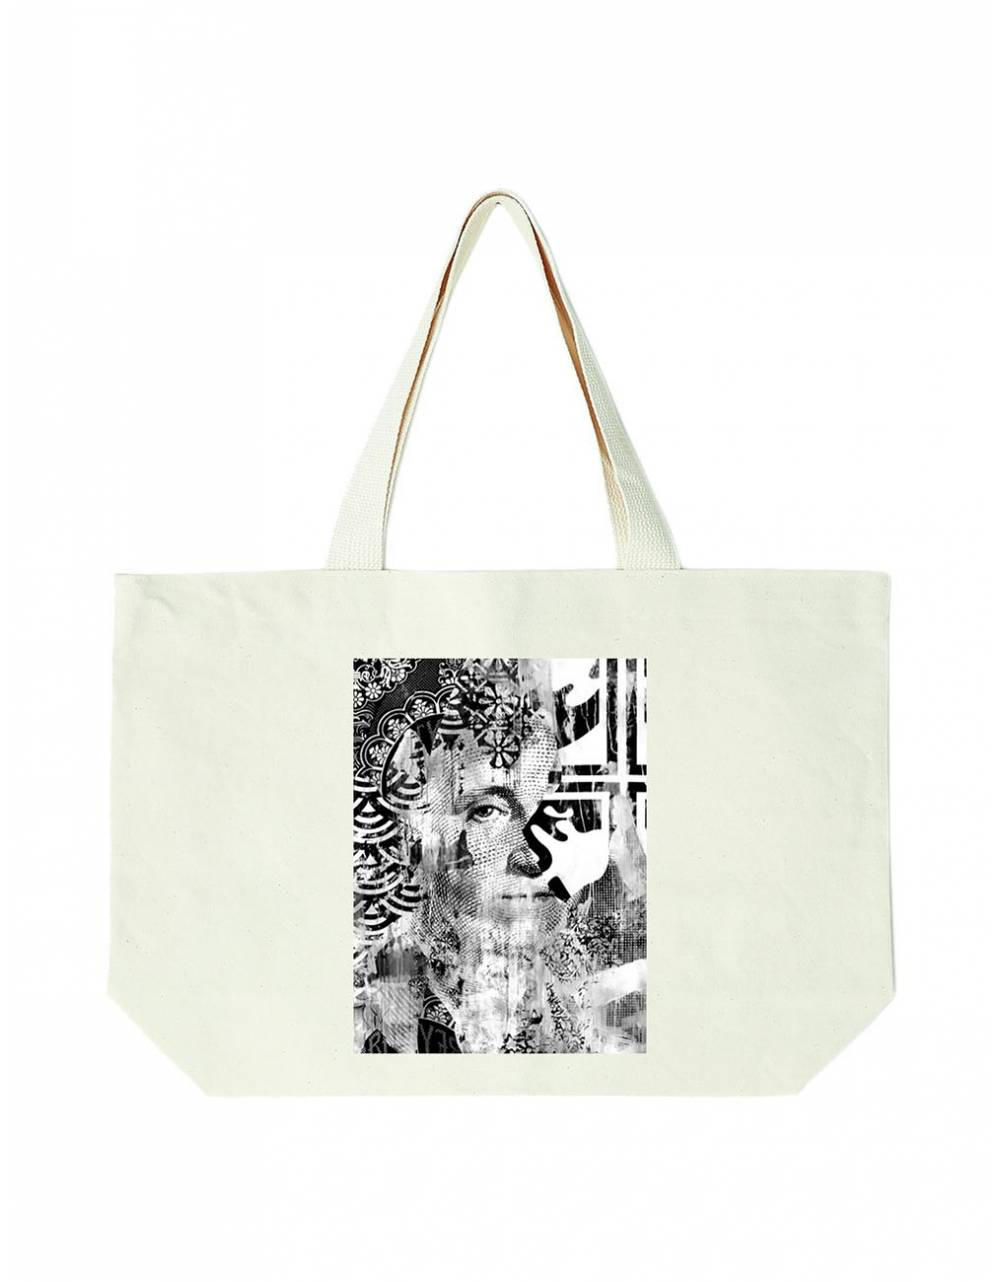 Obey Woman cream icons tote bag - natural obey Bags 56,00 €